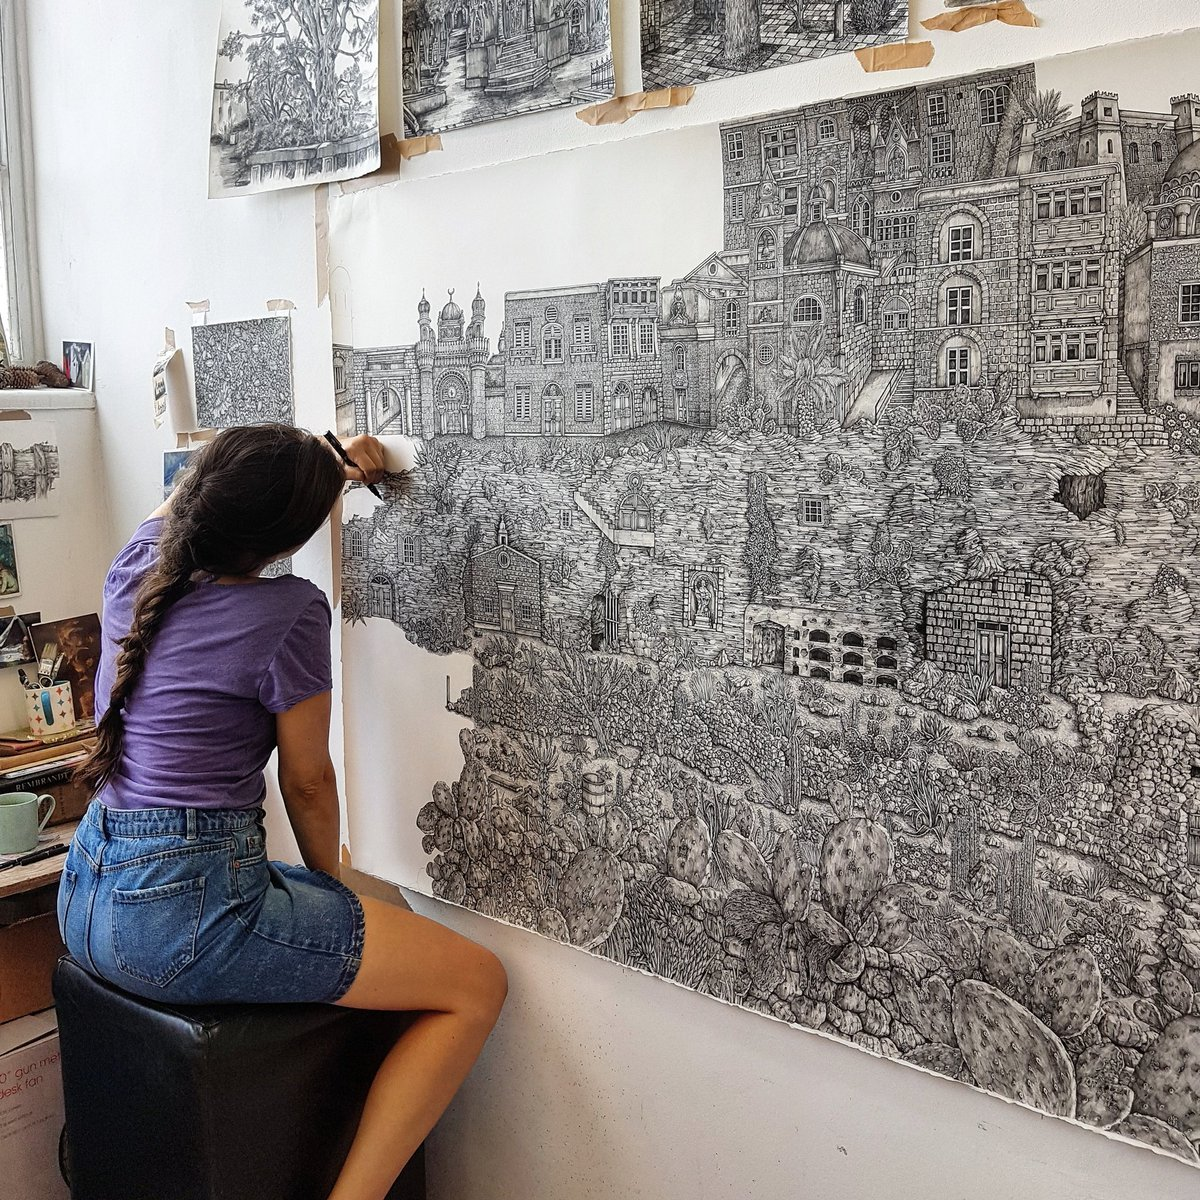 This artist does the most detailed pen drawings you've ever seen